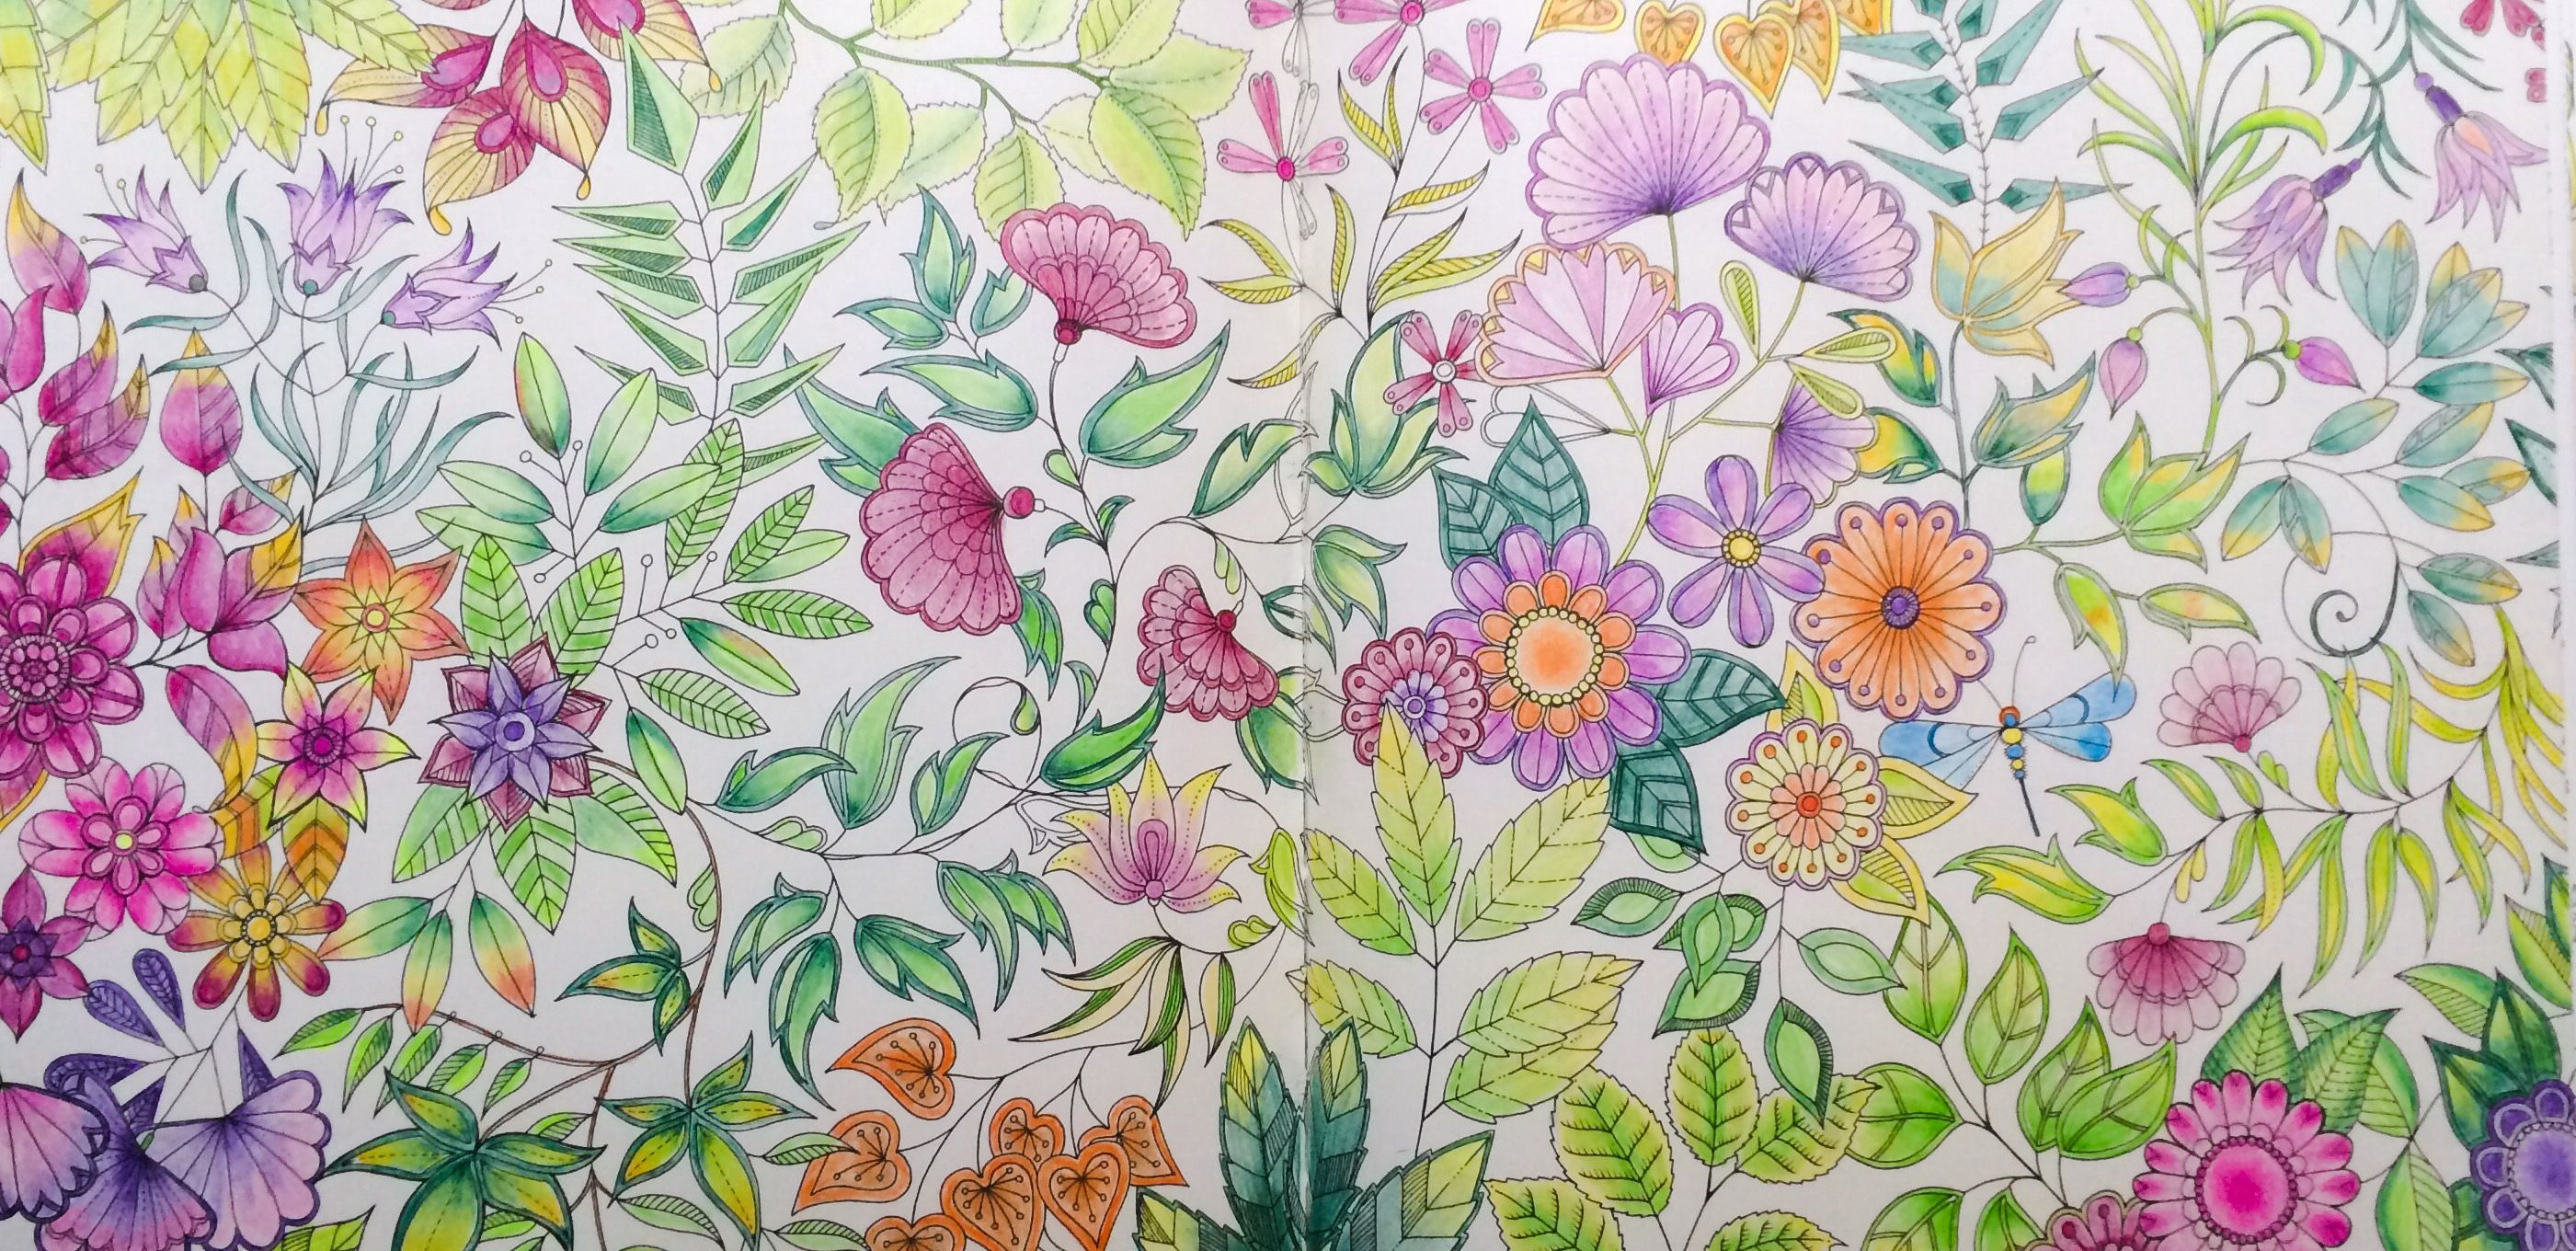 Pin by Shanna Nye on My Secret Garden   Pinterest   Coloring books